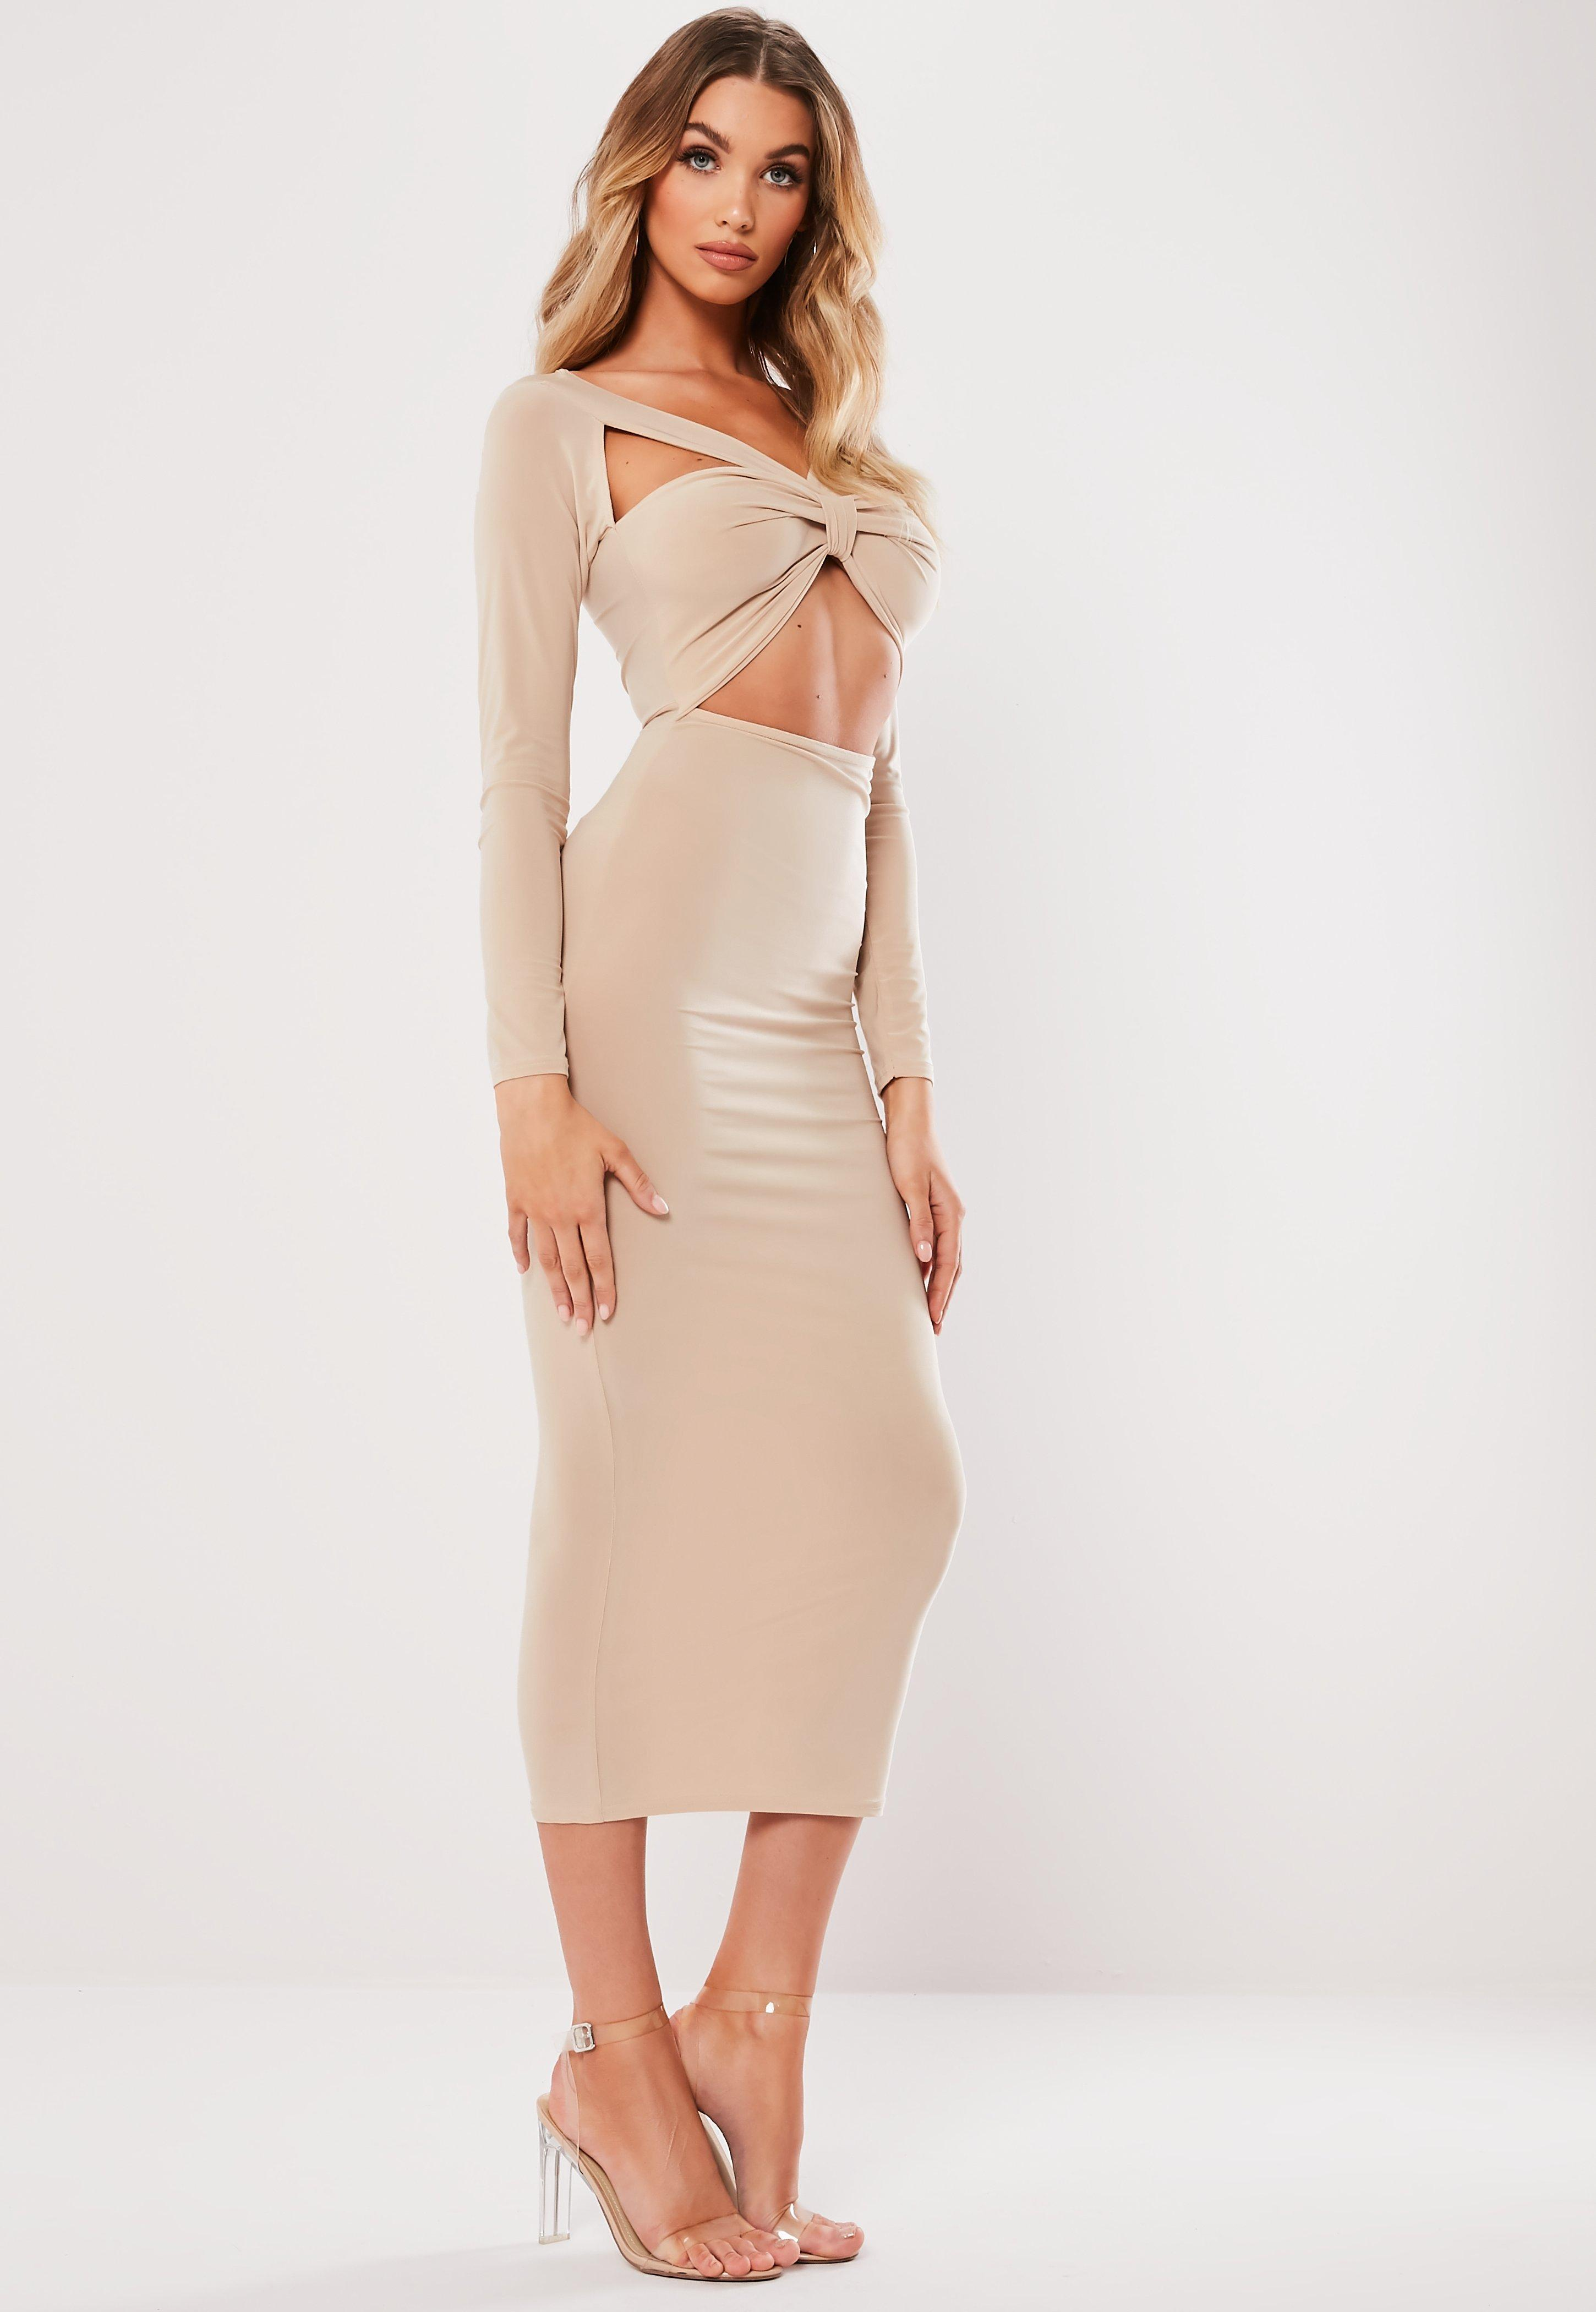 6606130257bb Lyst - Missguided Stone Slinky Cut Out Knot Front Midi Dress in Natural